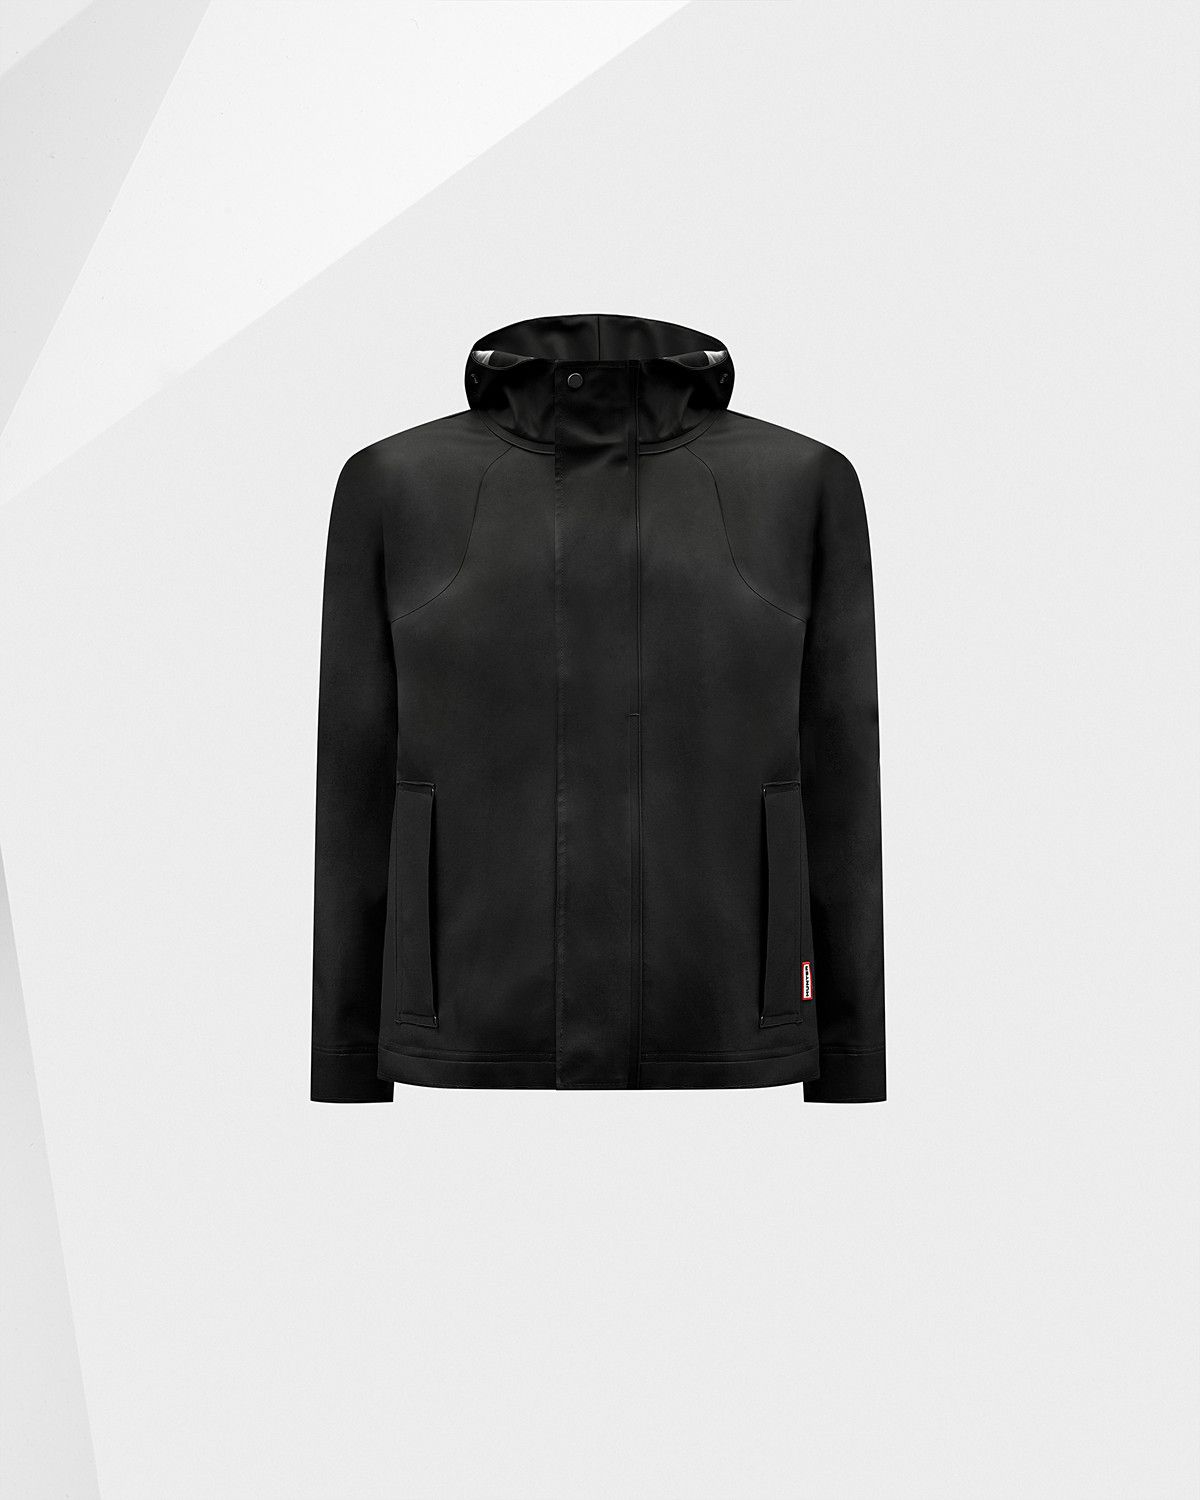 A waterproof jacket with a matte rubber-touch finish.